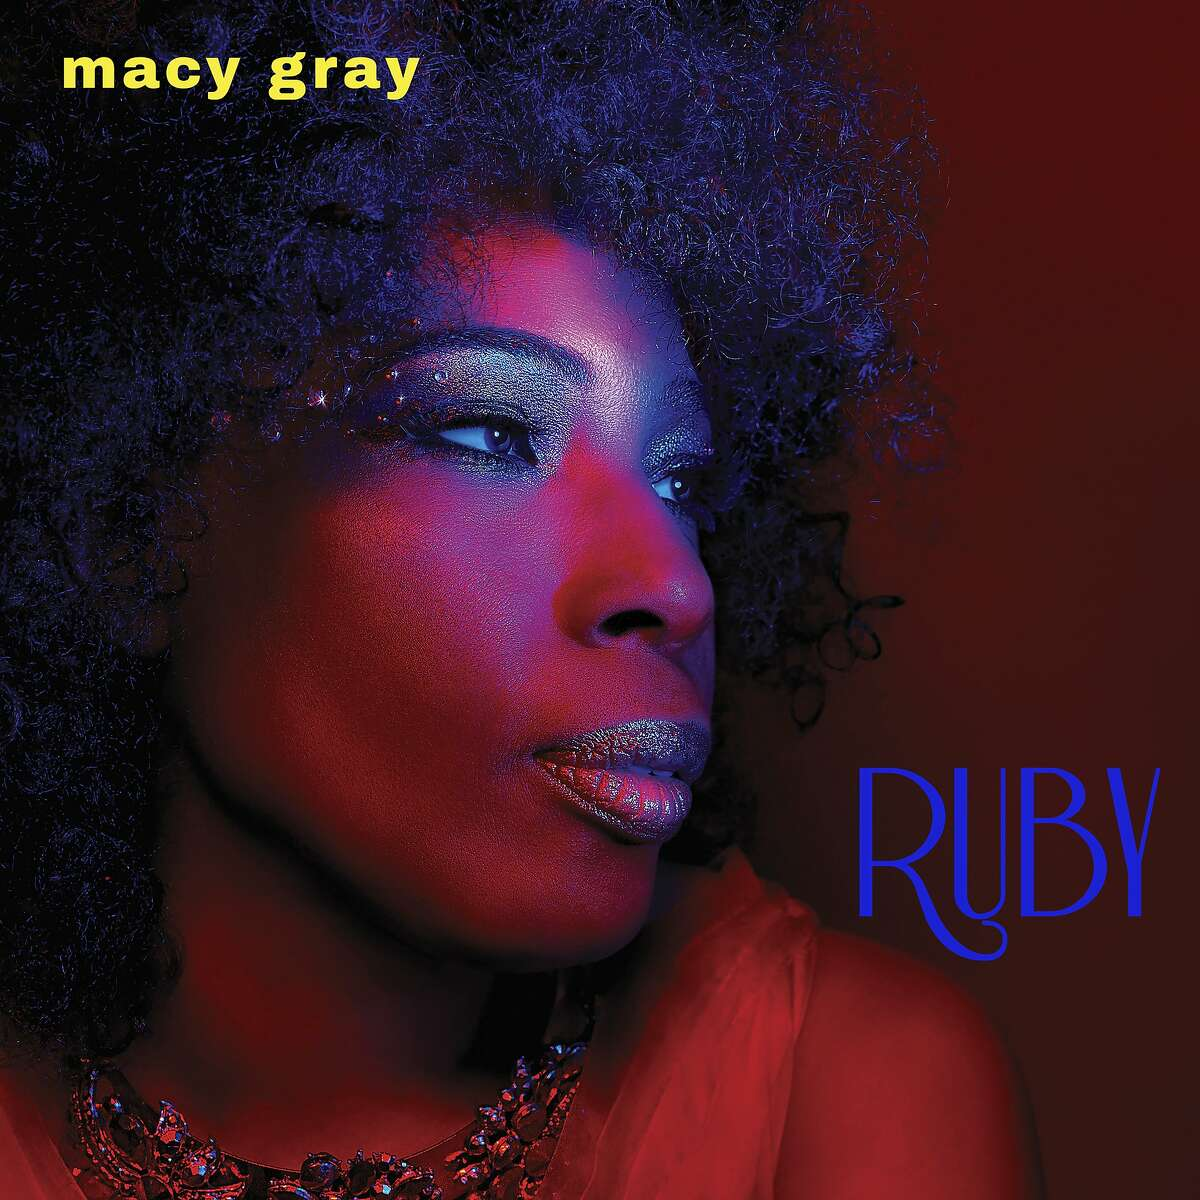 Macy Gray performs at the Fairfield Theatre Company on March 8. Find out more.